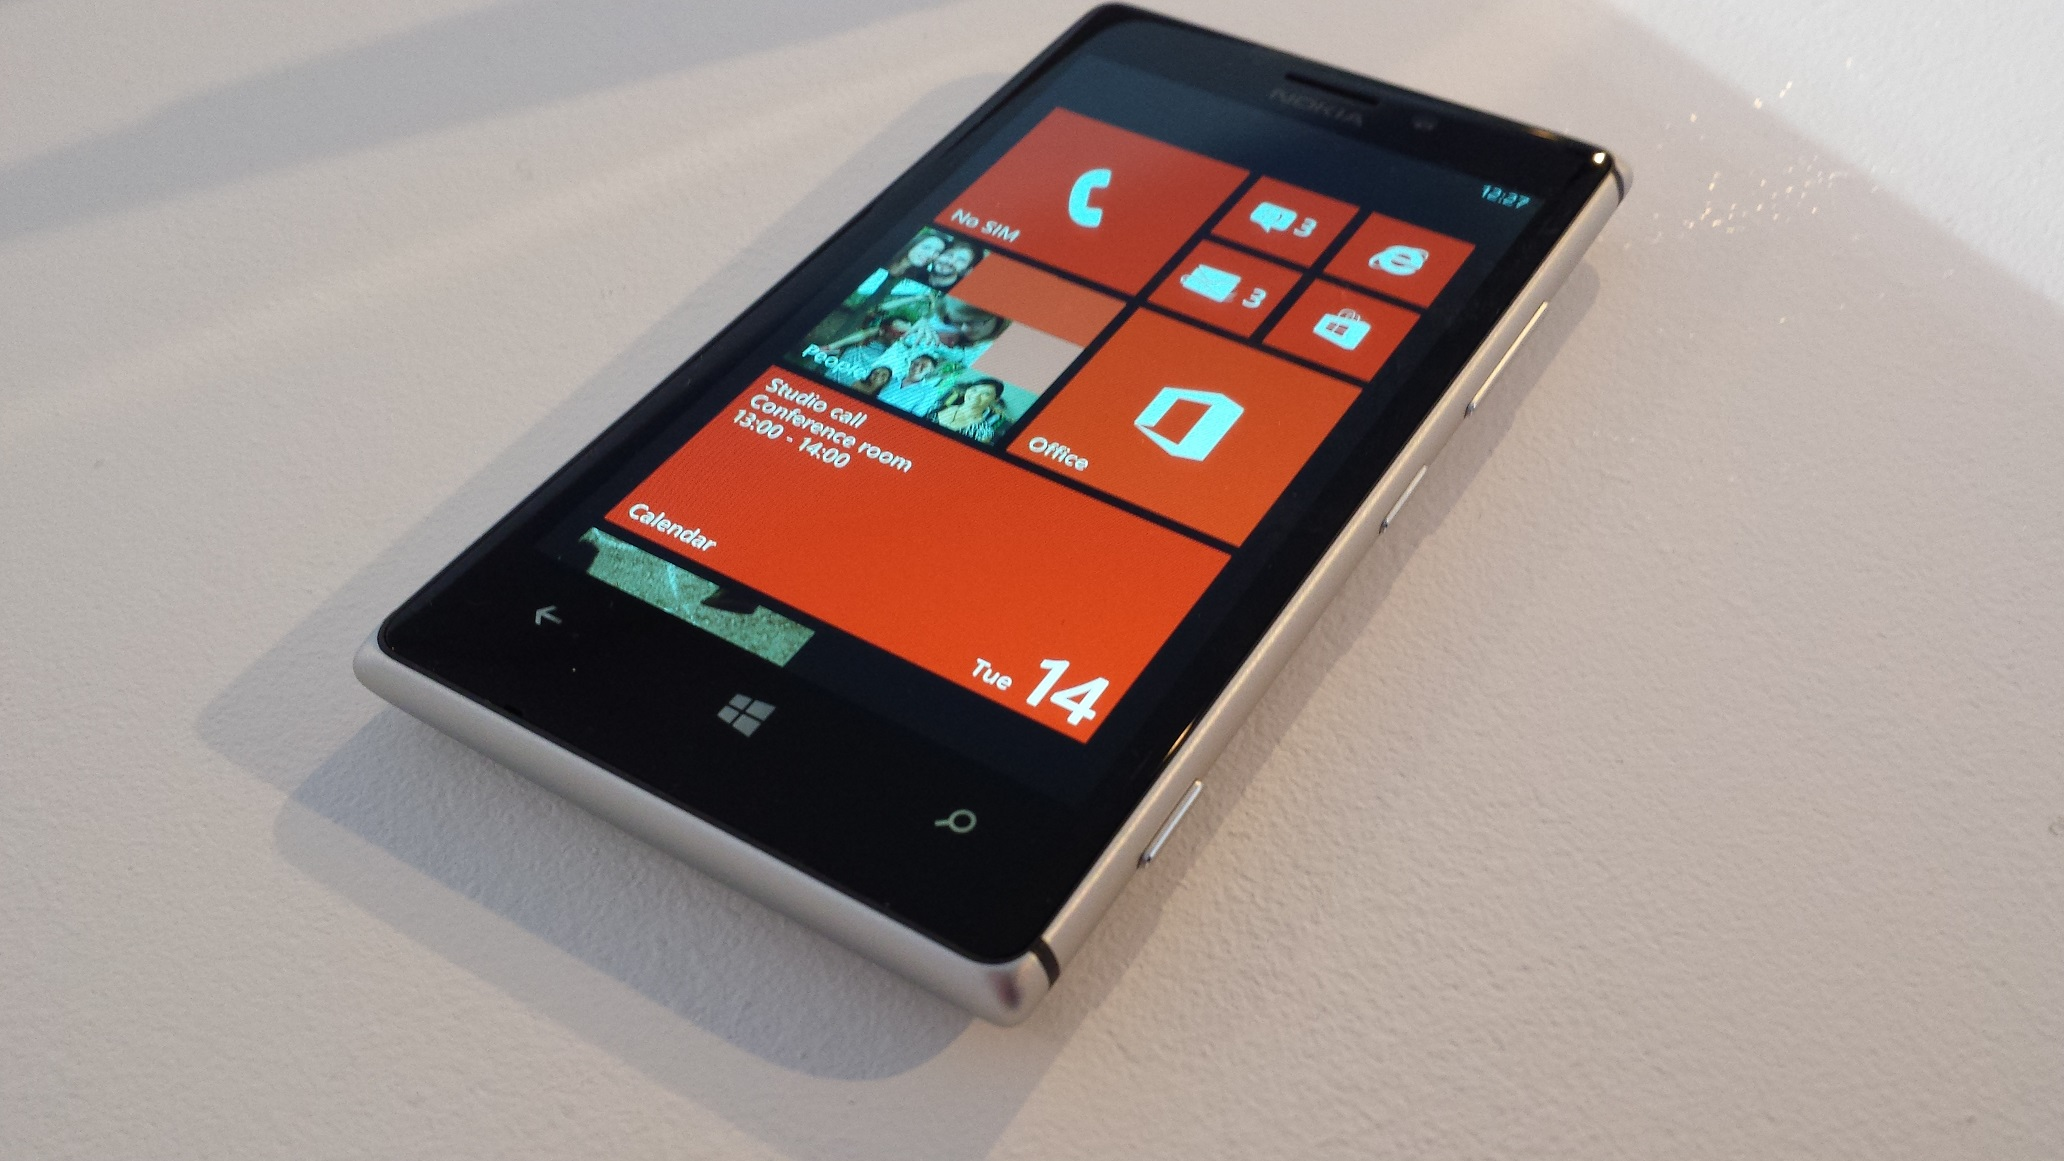 Related to Nokia Lumia 925 - Slim and Lightweight Smartphone with